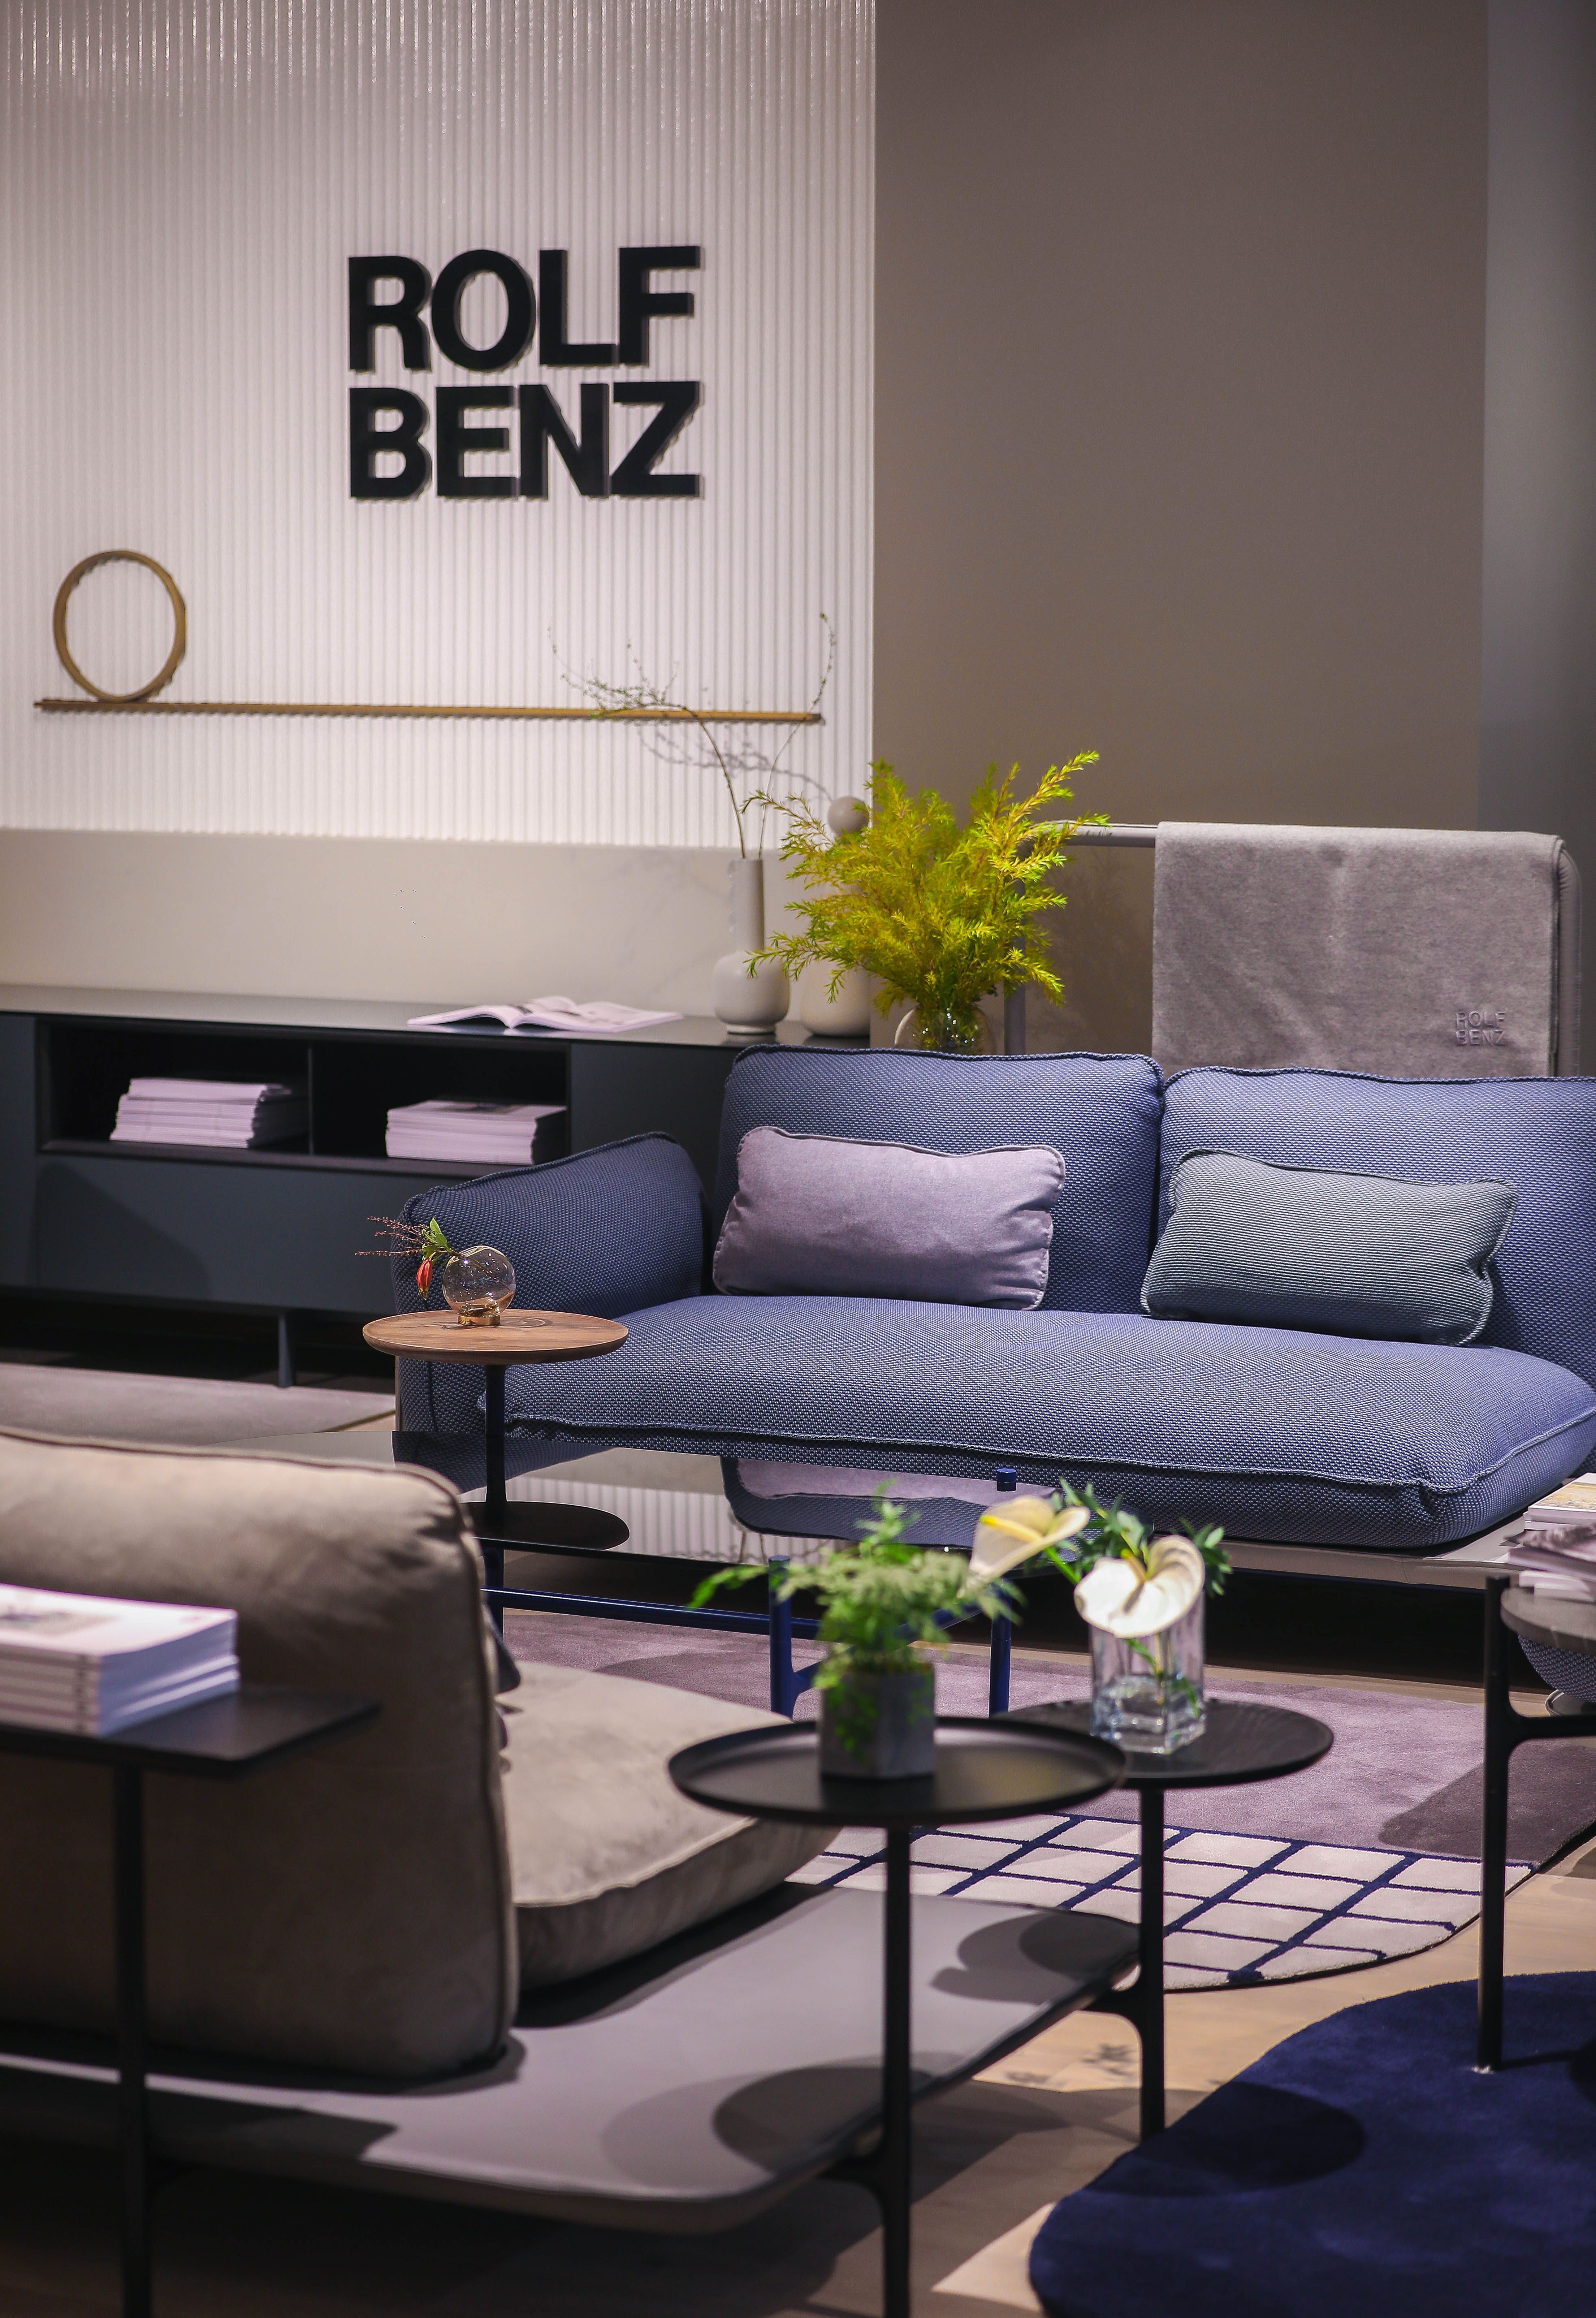 Rolf Benz Addit In Shanghai In 2020 Furniture Home Decor Furniture Mall